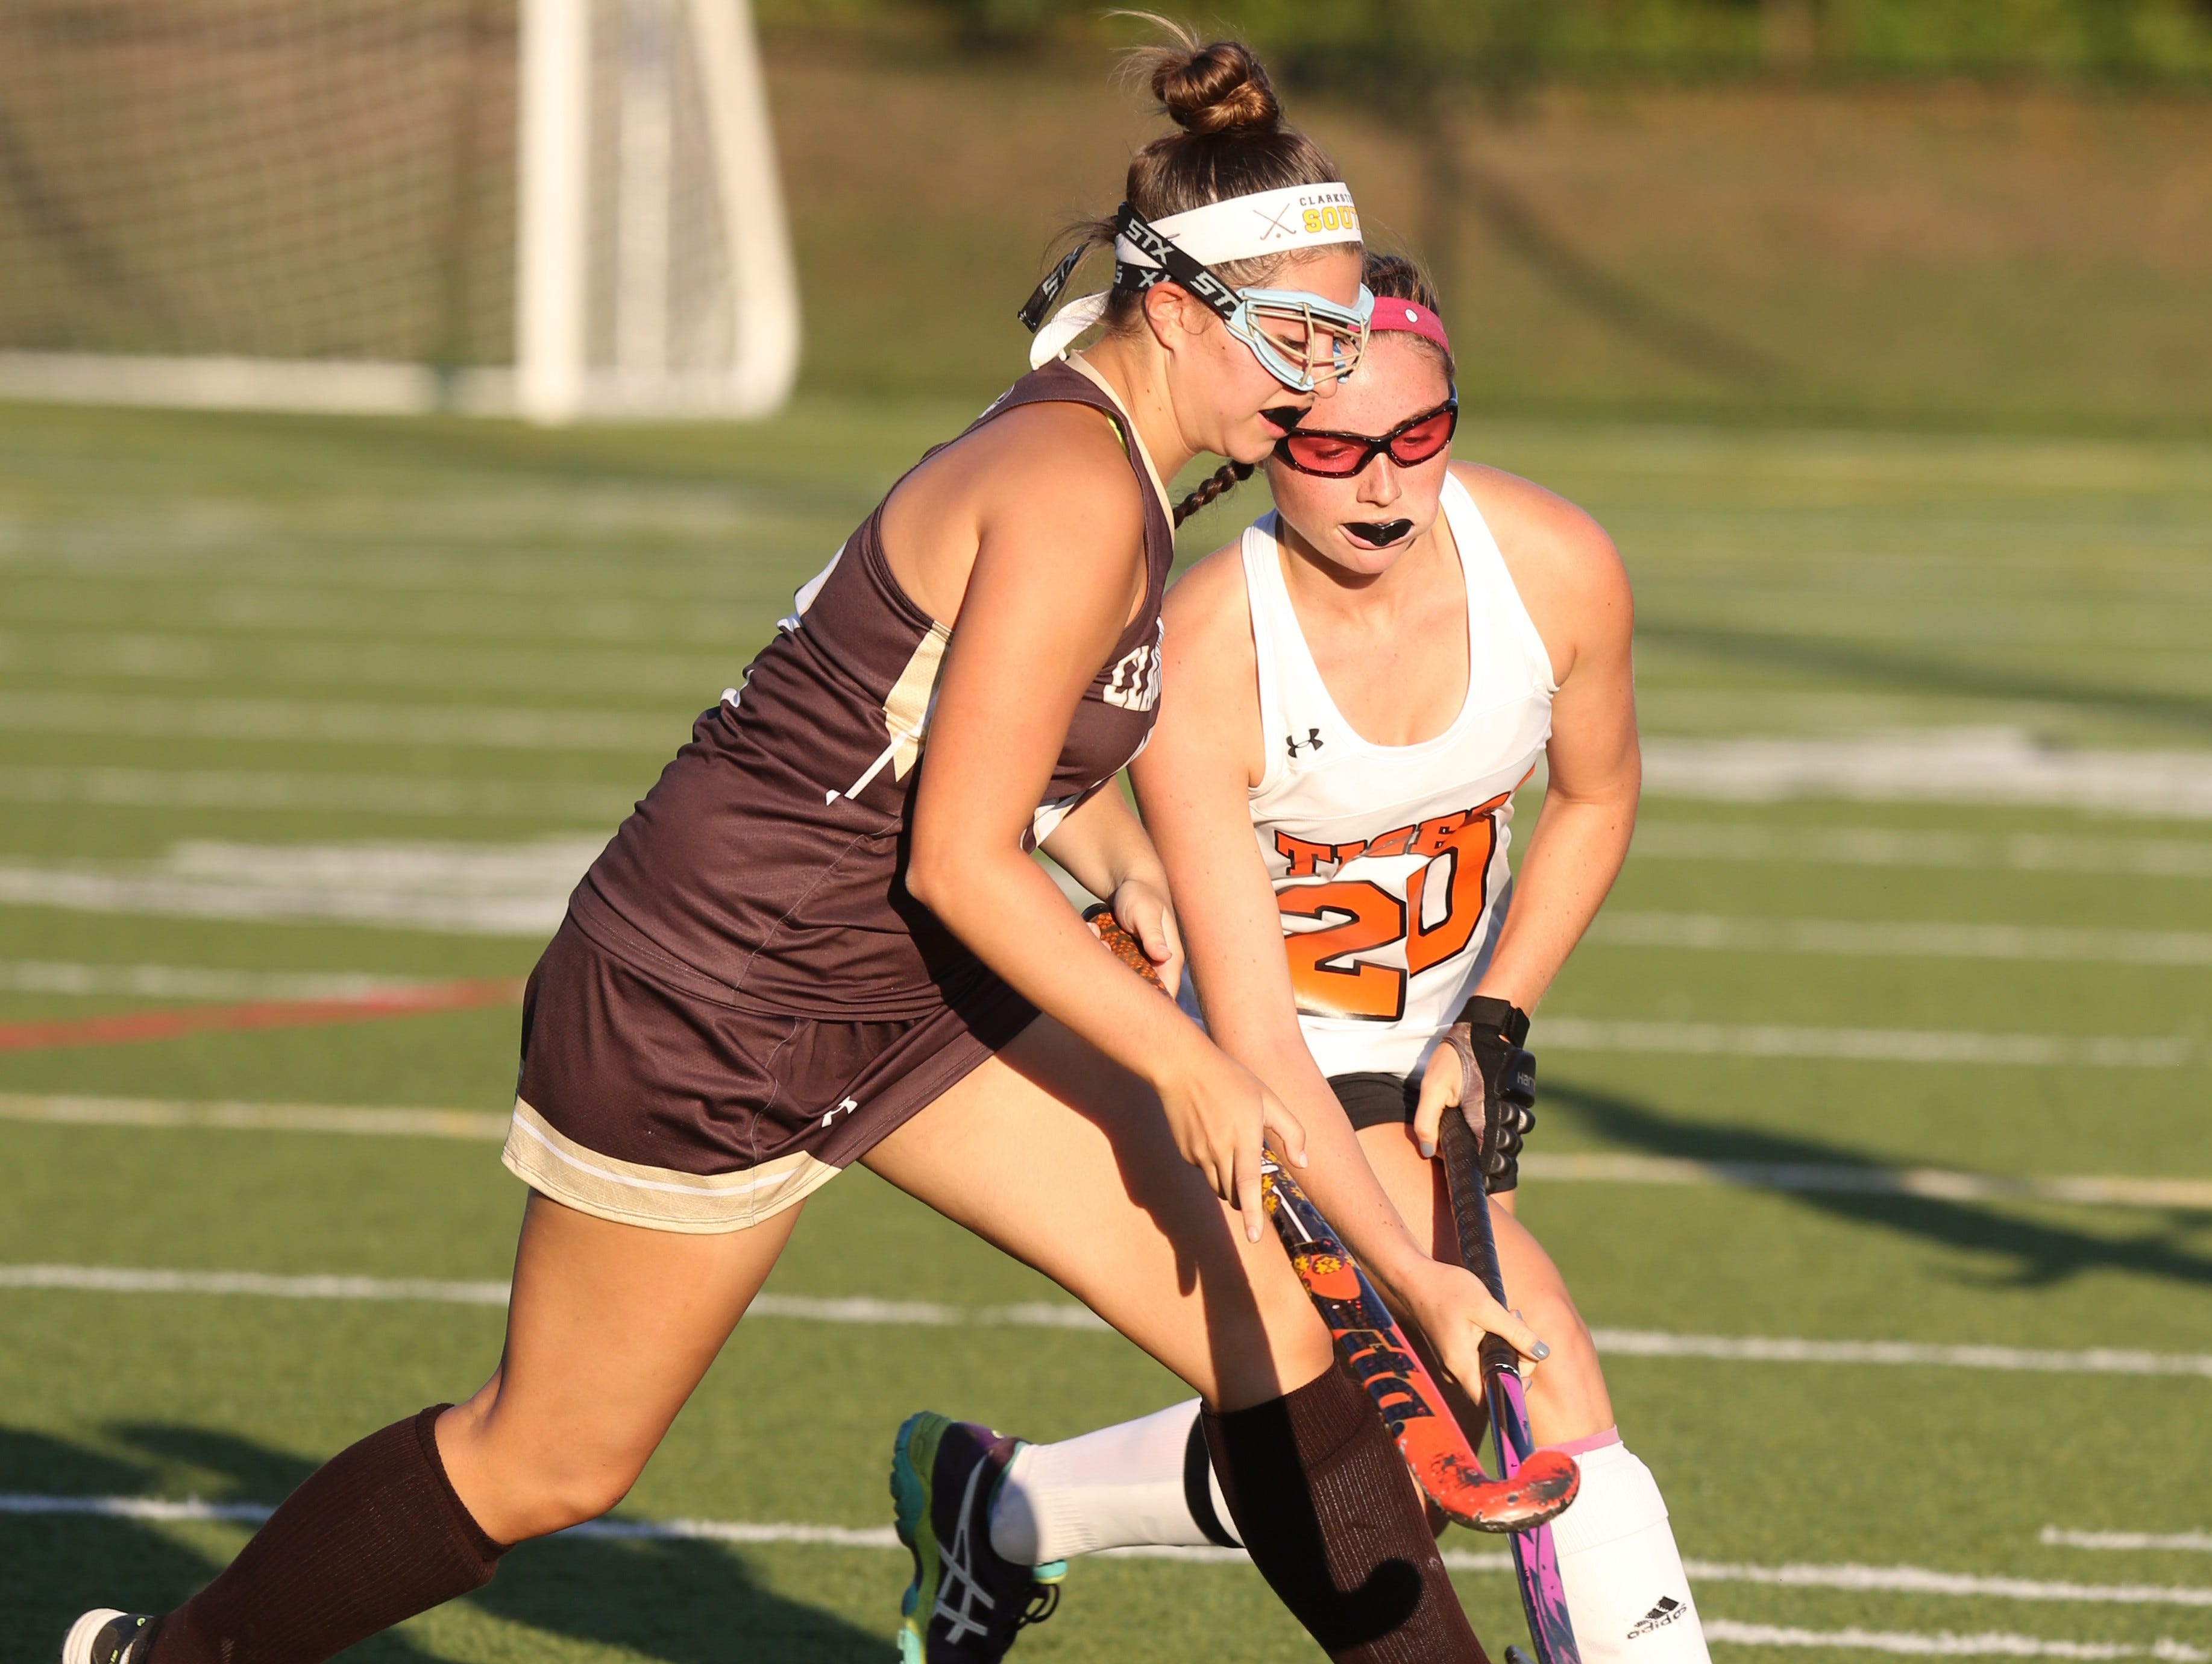 Clarkstown's Danielle Noia (12) and Mamaroneck's Sophie Miller (20) battle for control of the ball during girls field hockey game at Mamaroneck High School on Sept. 27, 2016.